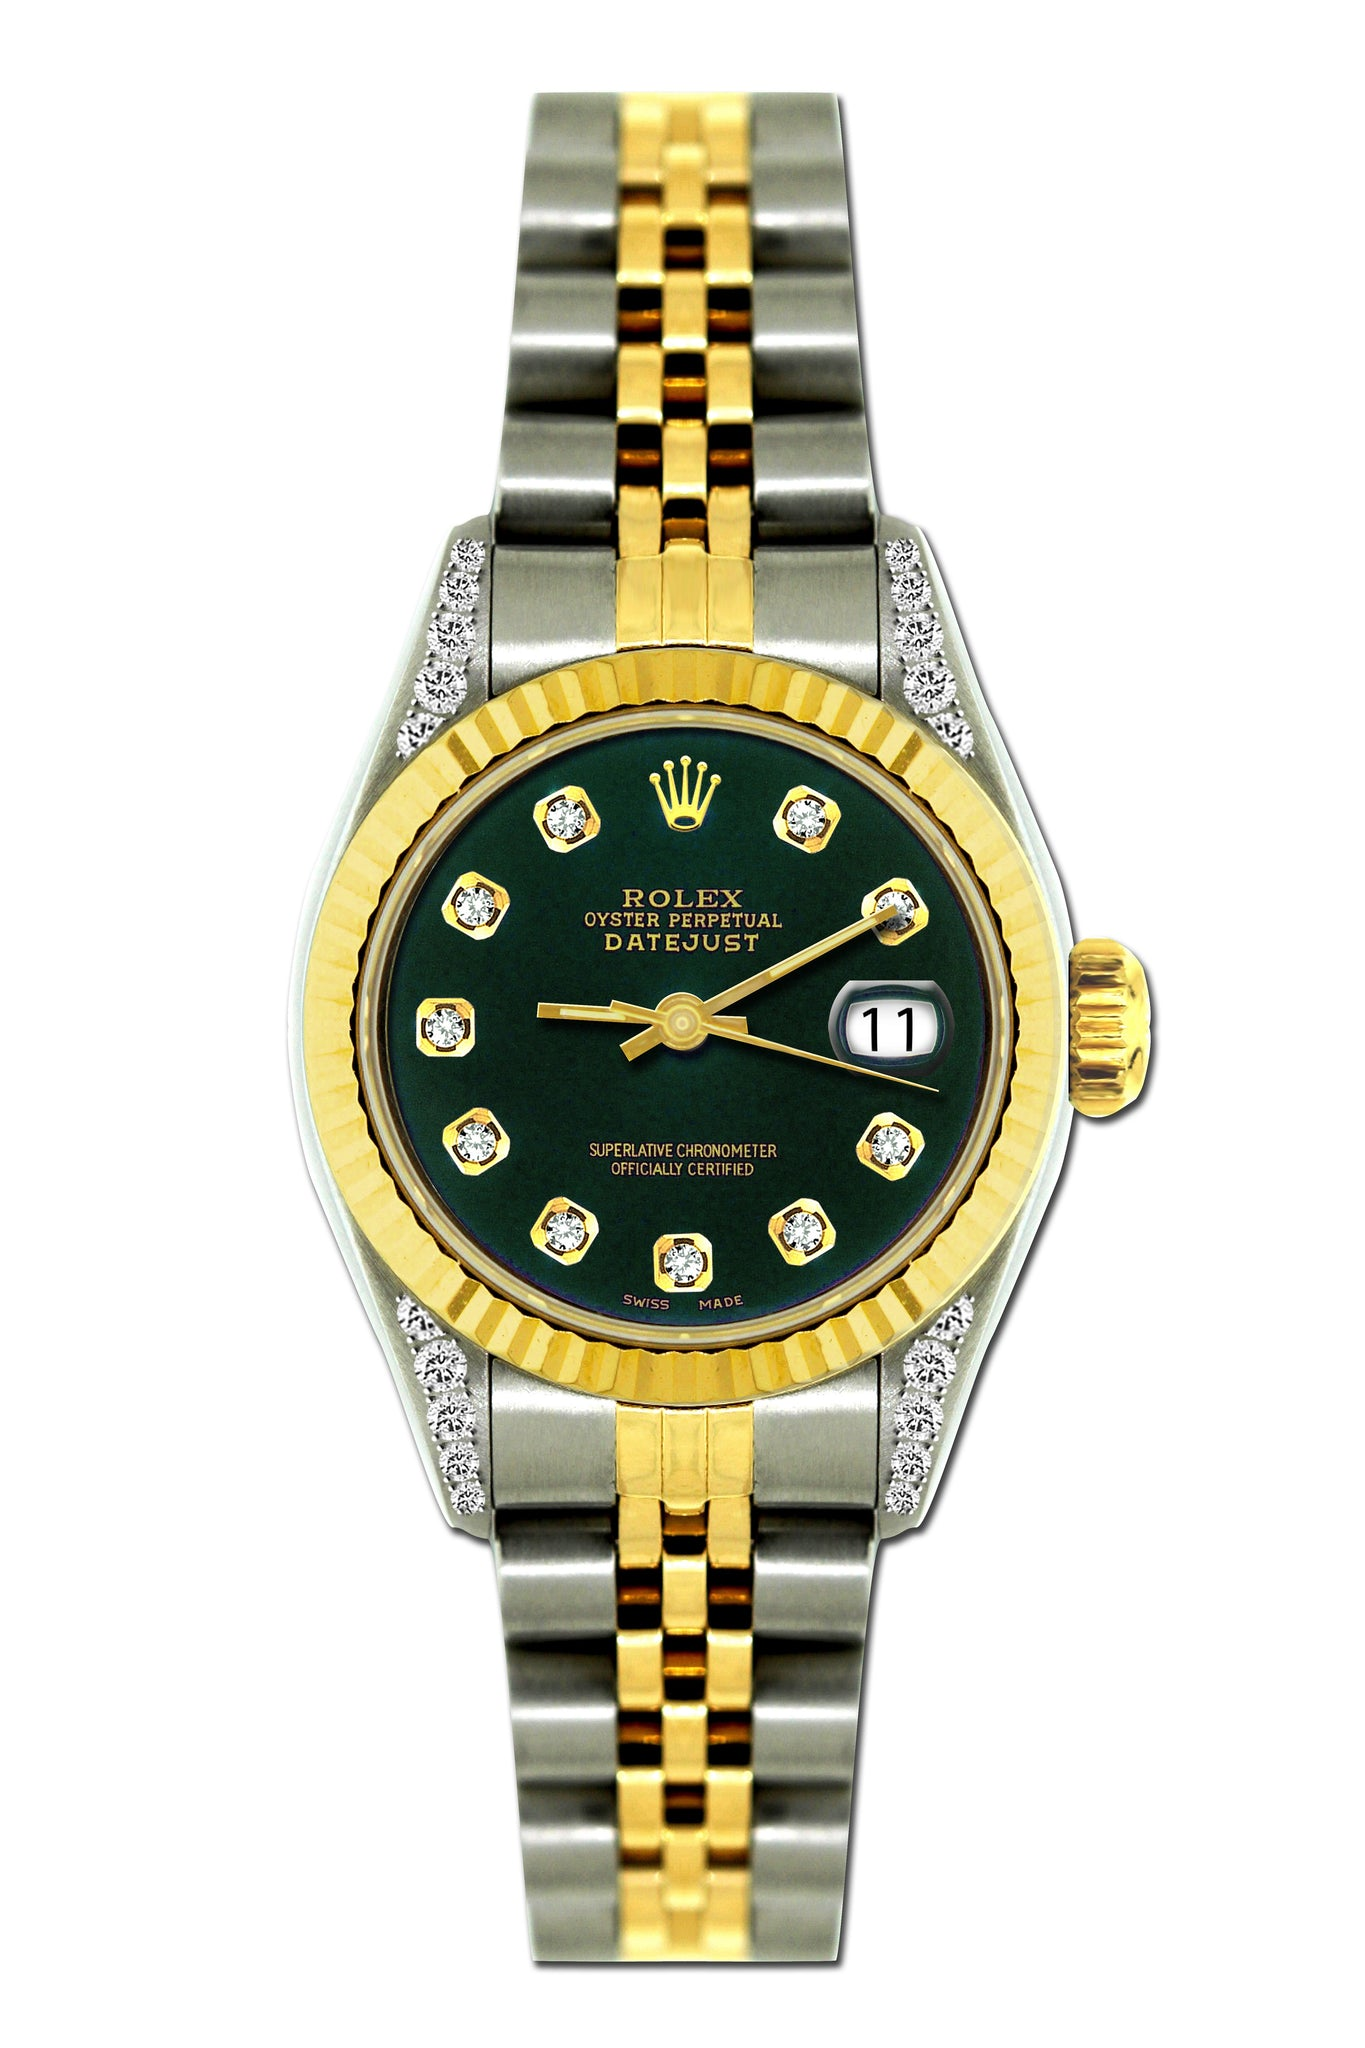 Rolex Datejust Diamond Watch, 26mm, Yellow Gold and Stainless Steel Bracelet Sherpa Blue Dial w/ Diamond Lugs